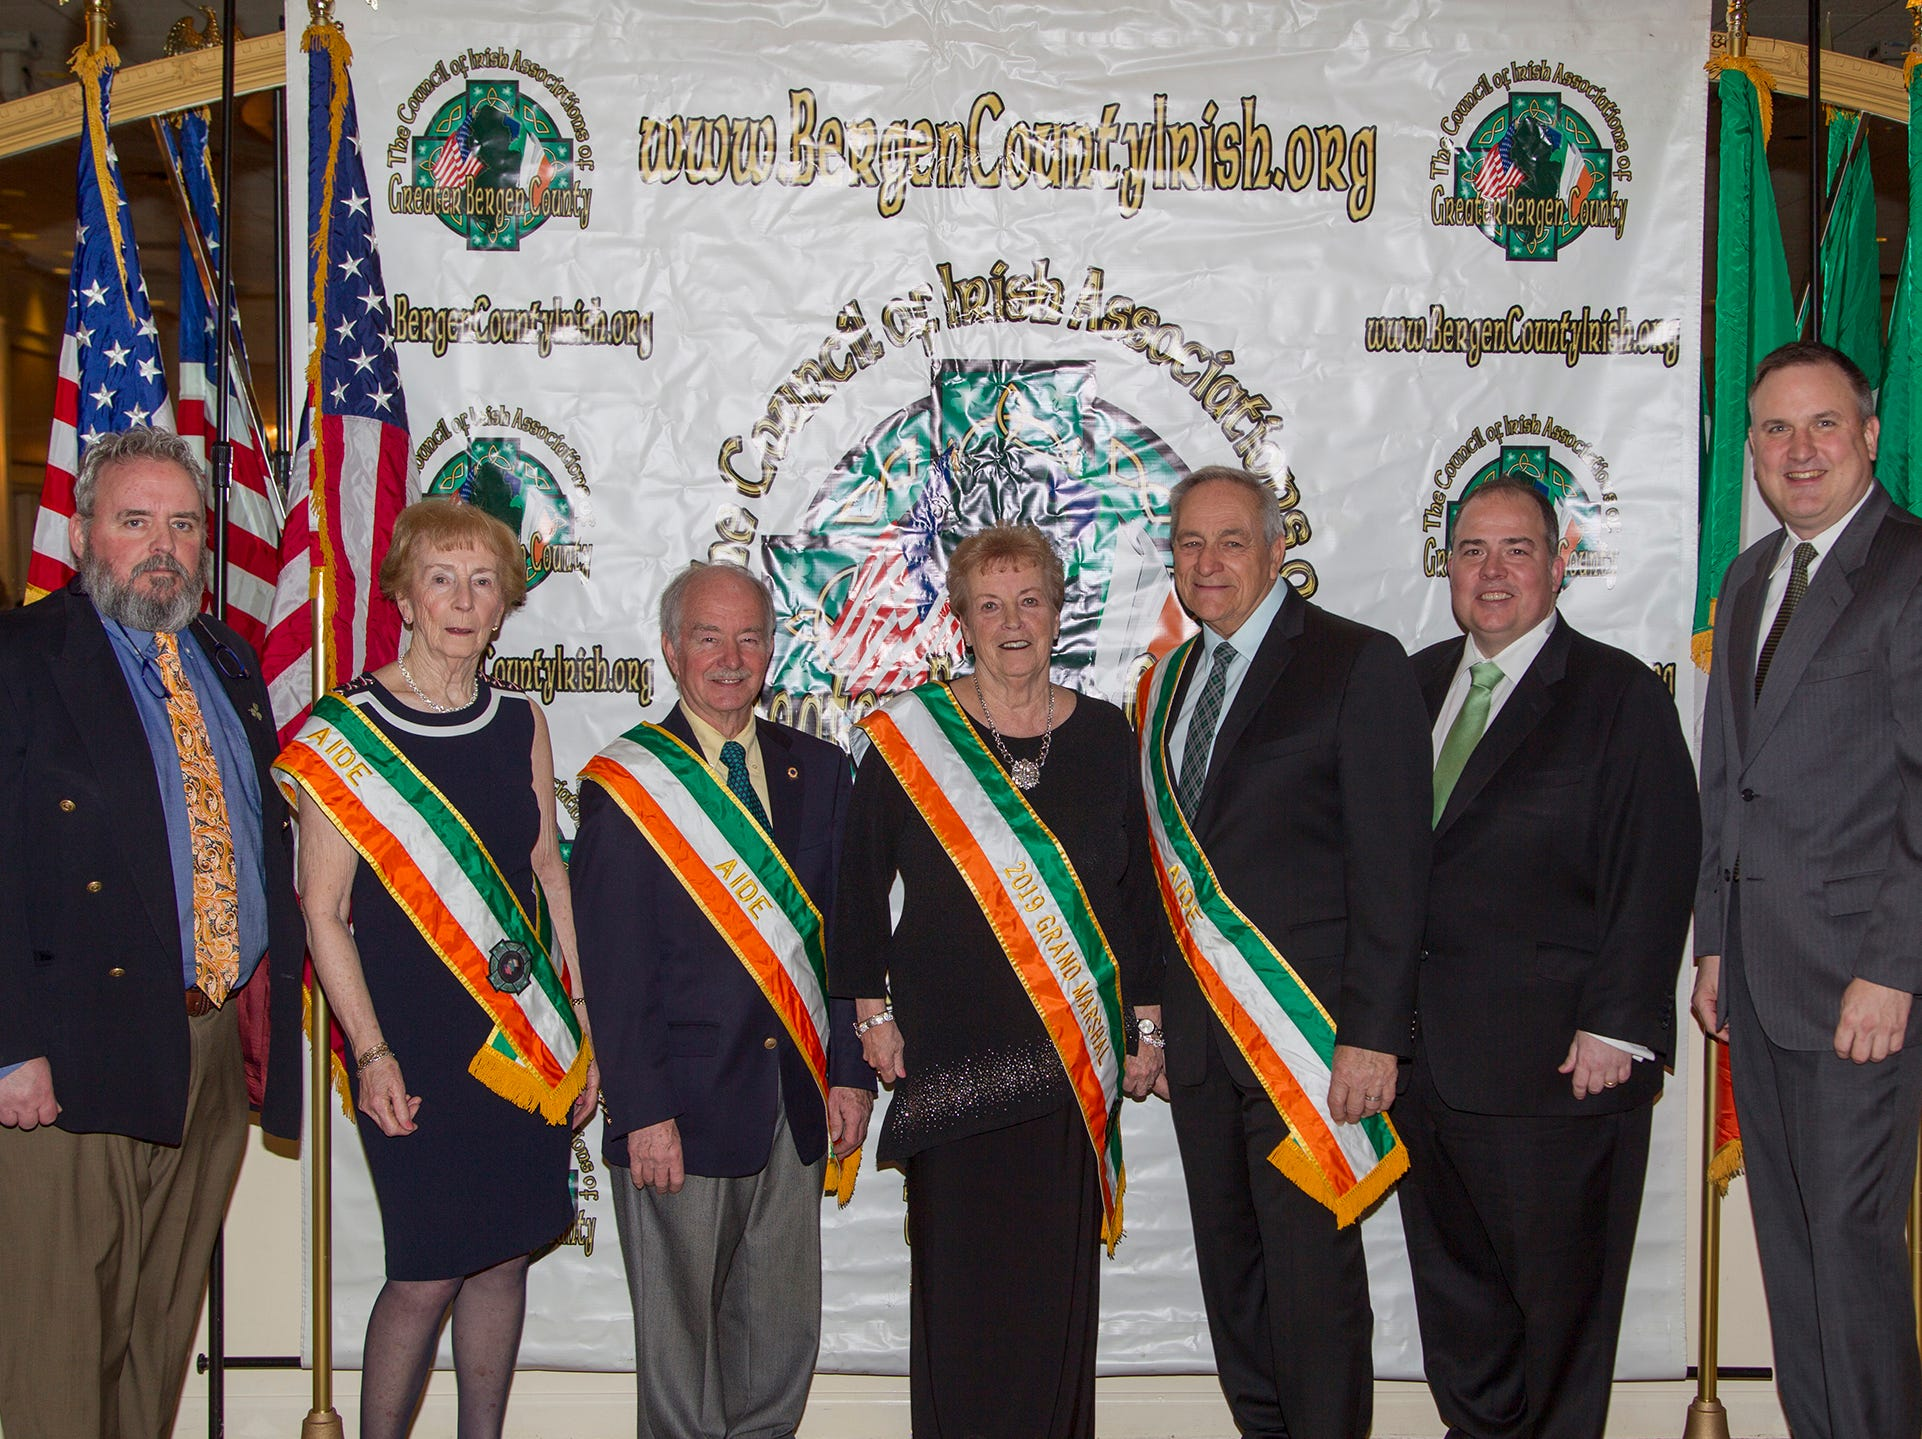 Peter Anne Donnelly, Tom Neats, Patsy McLoughlin, Joe Verga, Tom O'Reilly, John O'Malley. 38th Annual St. Patrick's Day parade Installation Dance at The Graycliff in Moonachie. 2/23/2019